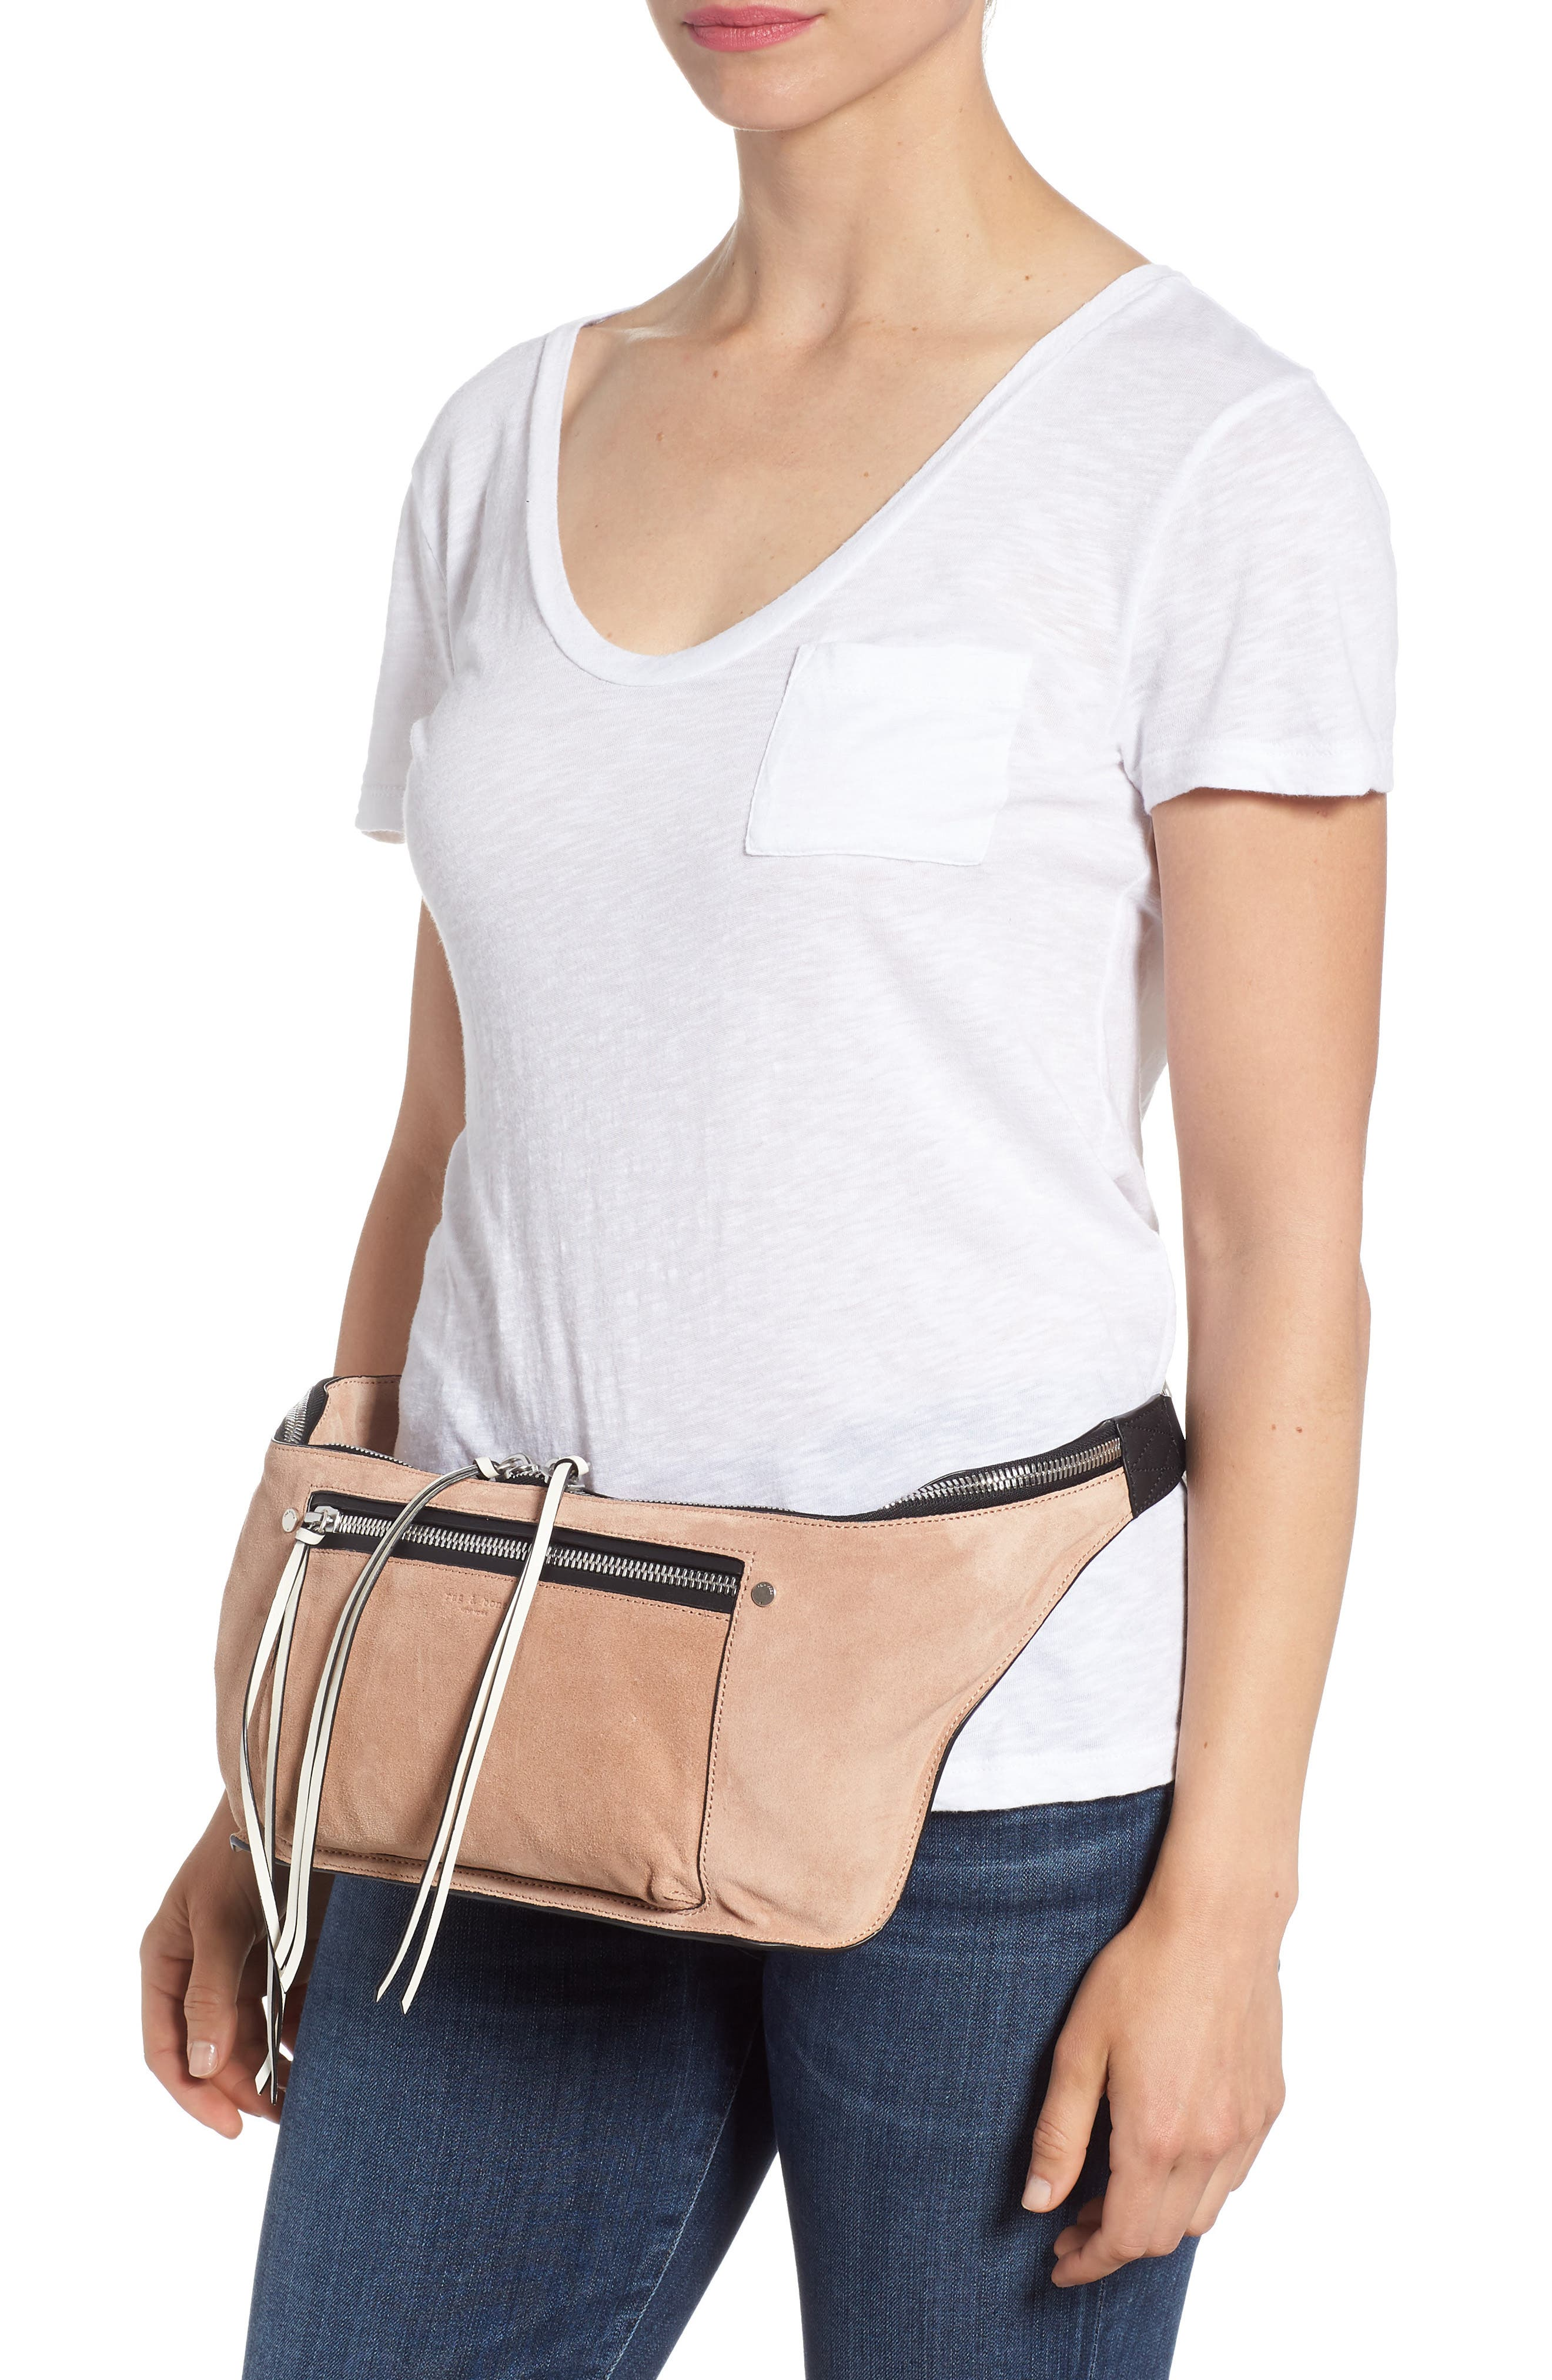 Elliot Leather Fanny Pack,                             Alternate thumbnail 2, color,                             NUDE SUEDE